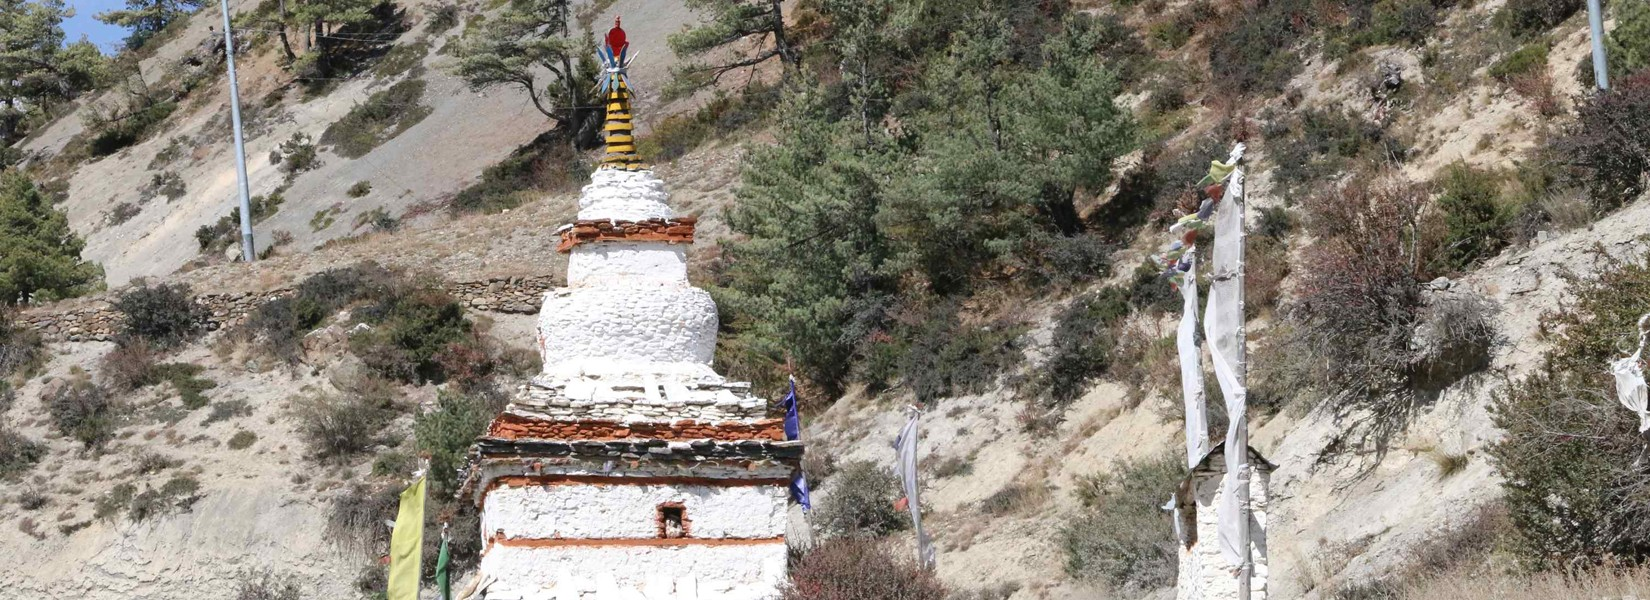 Acclamitization Day When Annapurna Circuit Trek